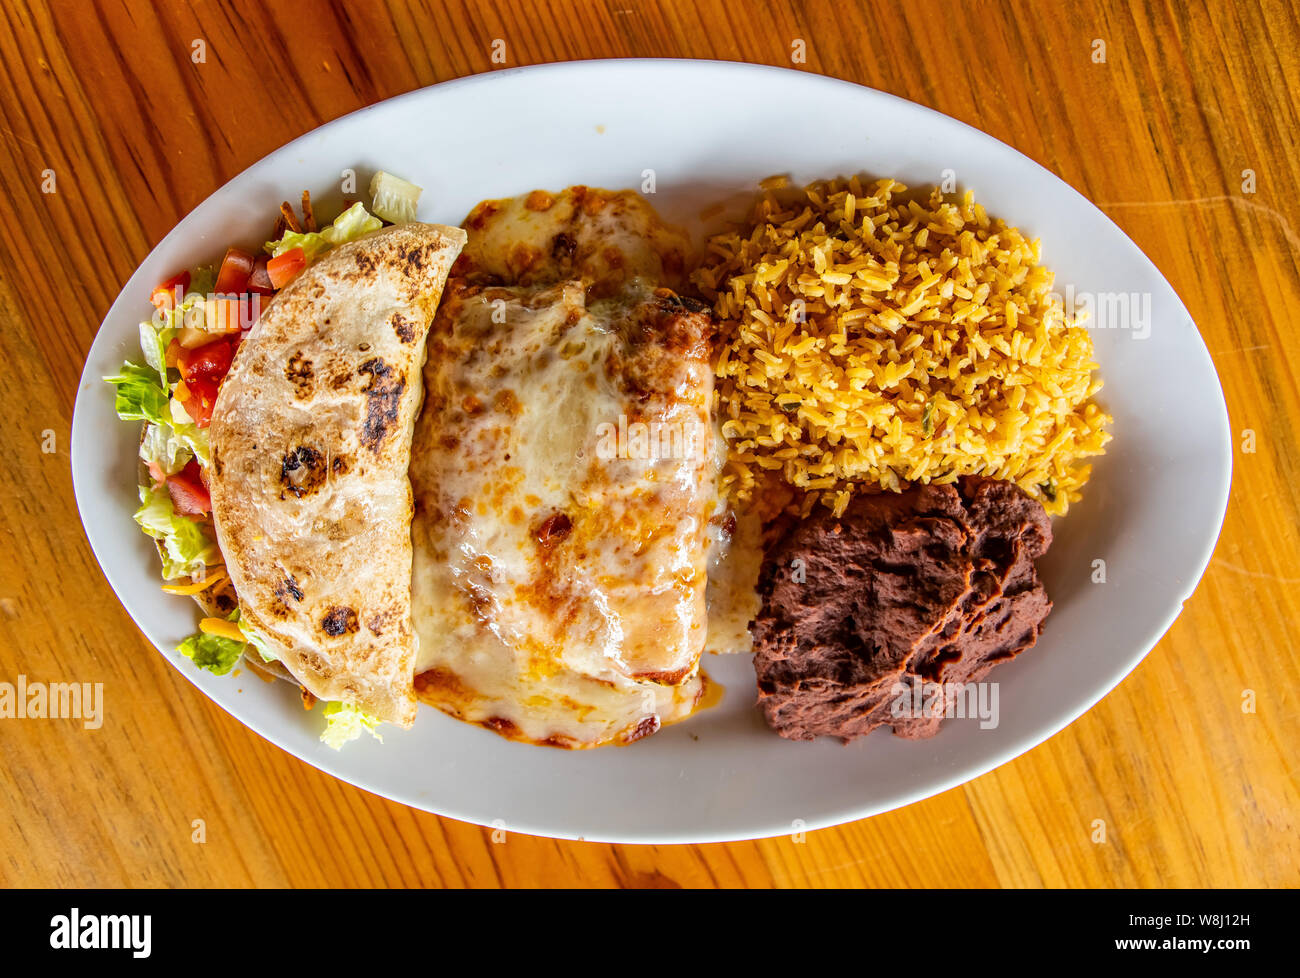 Chicken Enchilada plate with rice, beans and chicken taco Stock Photo